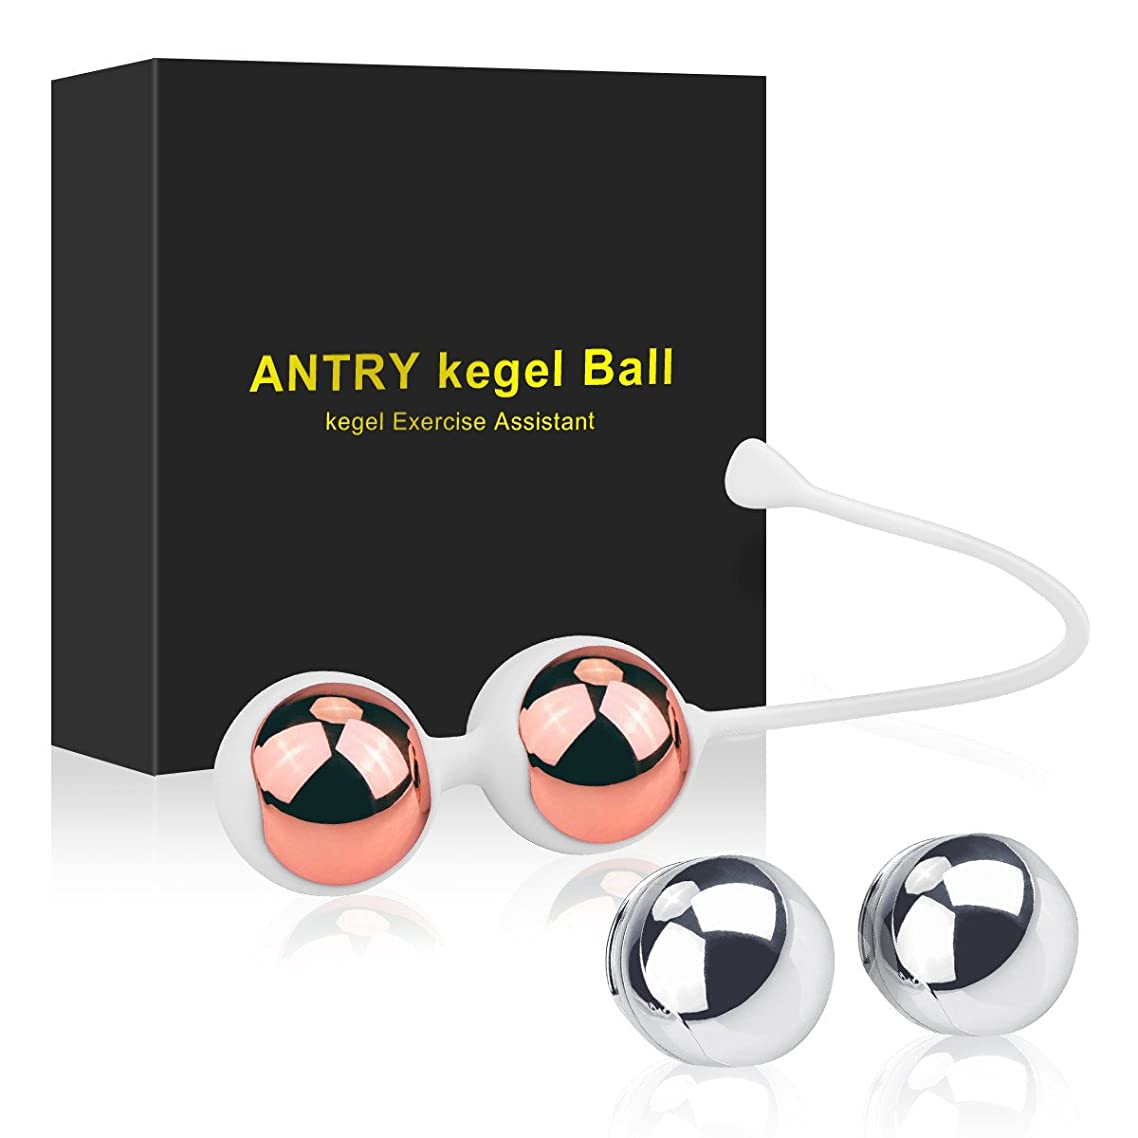 Kegel Exercise Weights - Lilizhou Ben Wa Kegel Balls Weighted Exercise Kit for Beginners or Advanced, Doctor Recommended for Women & Girls Bladder Control and Pelvic Floor Muscle Exercisers